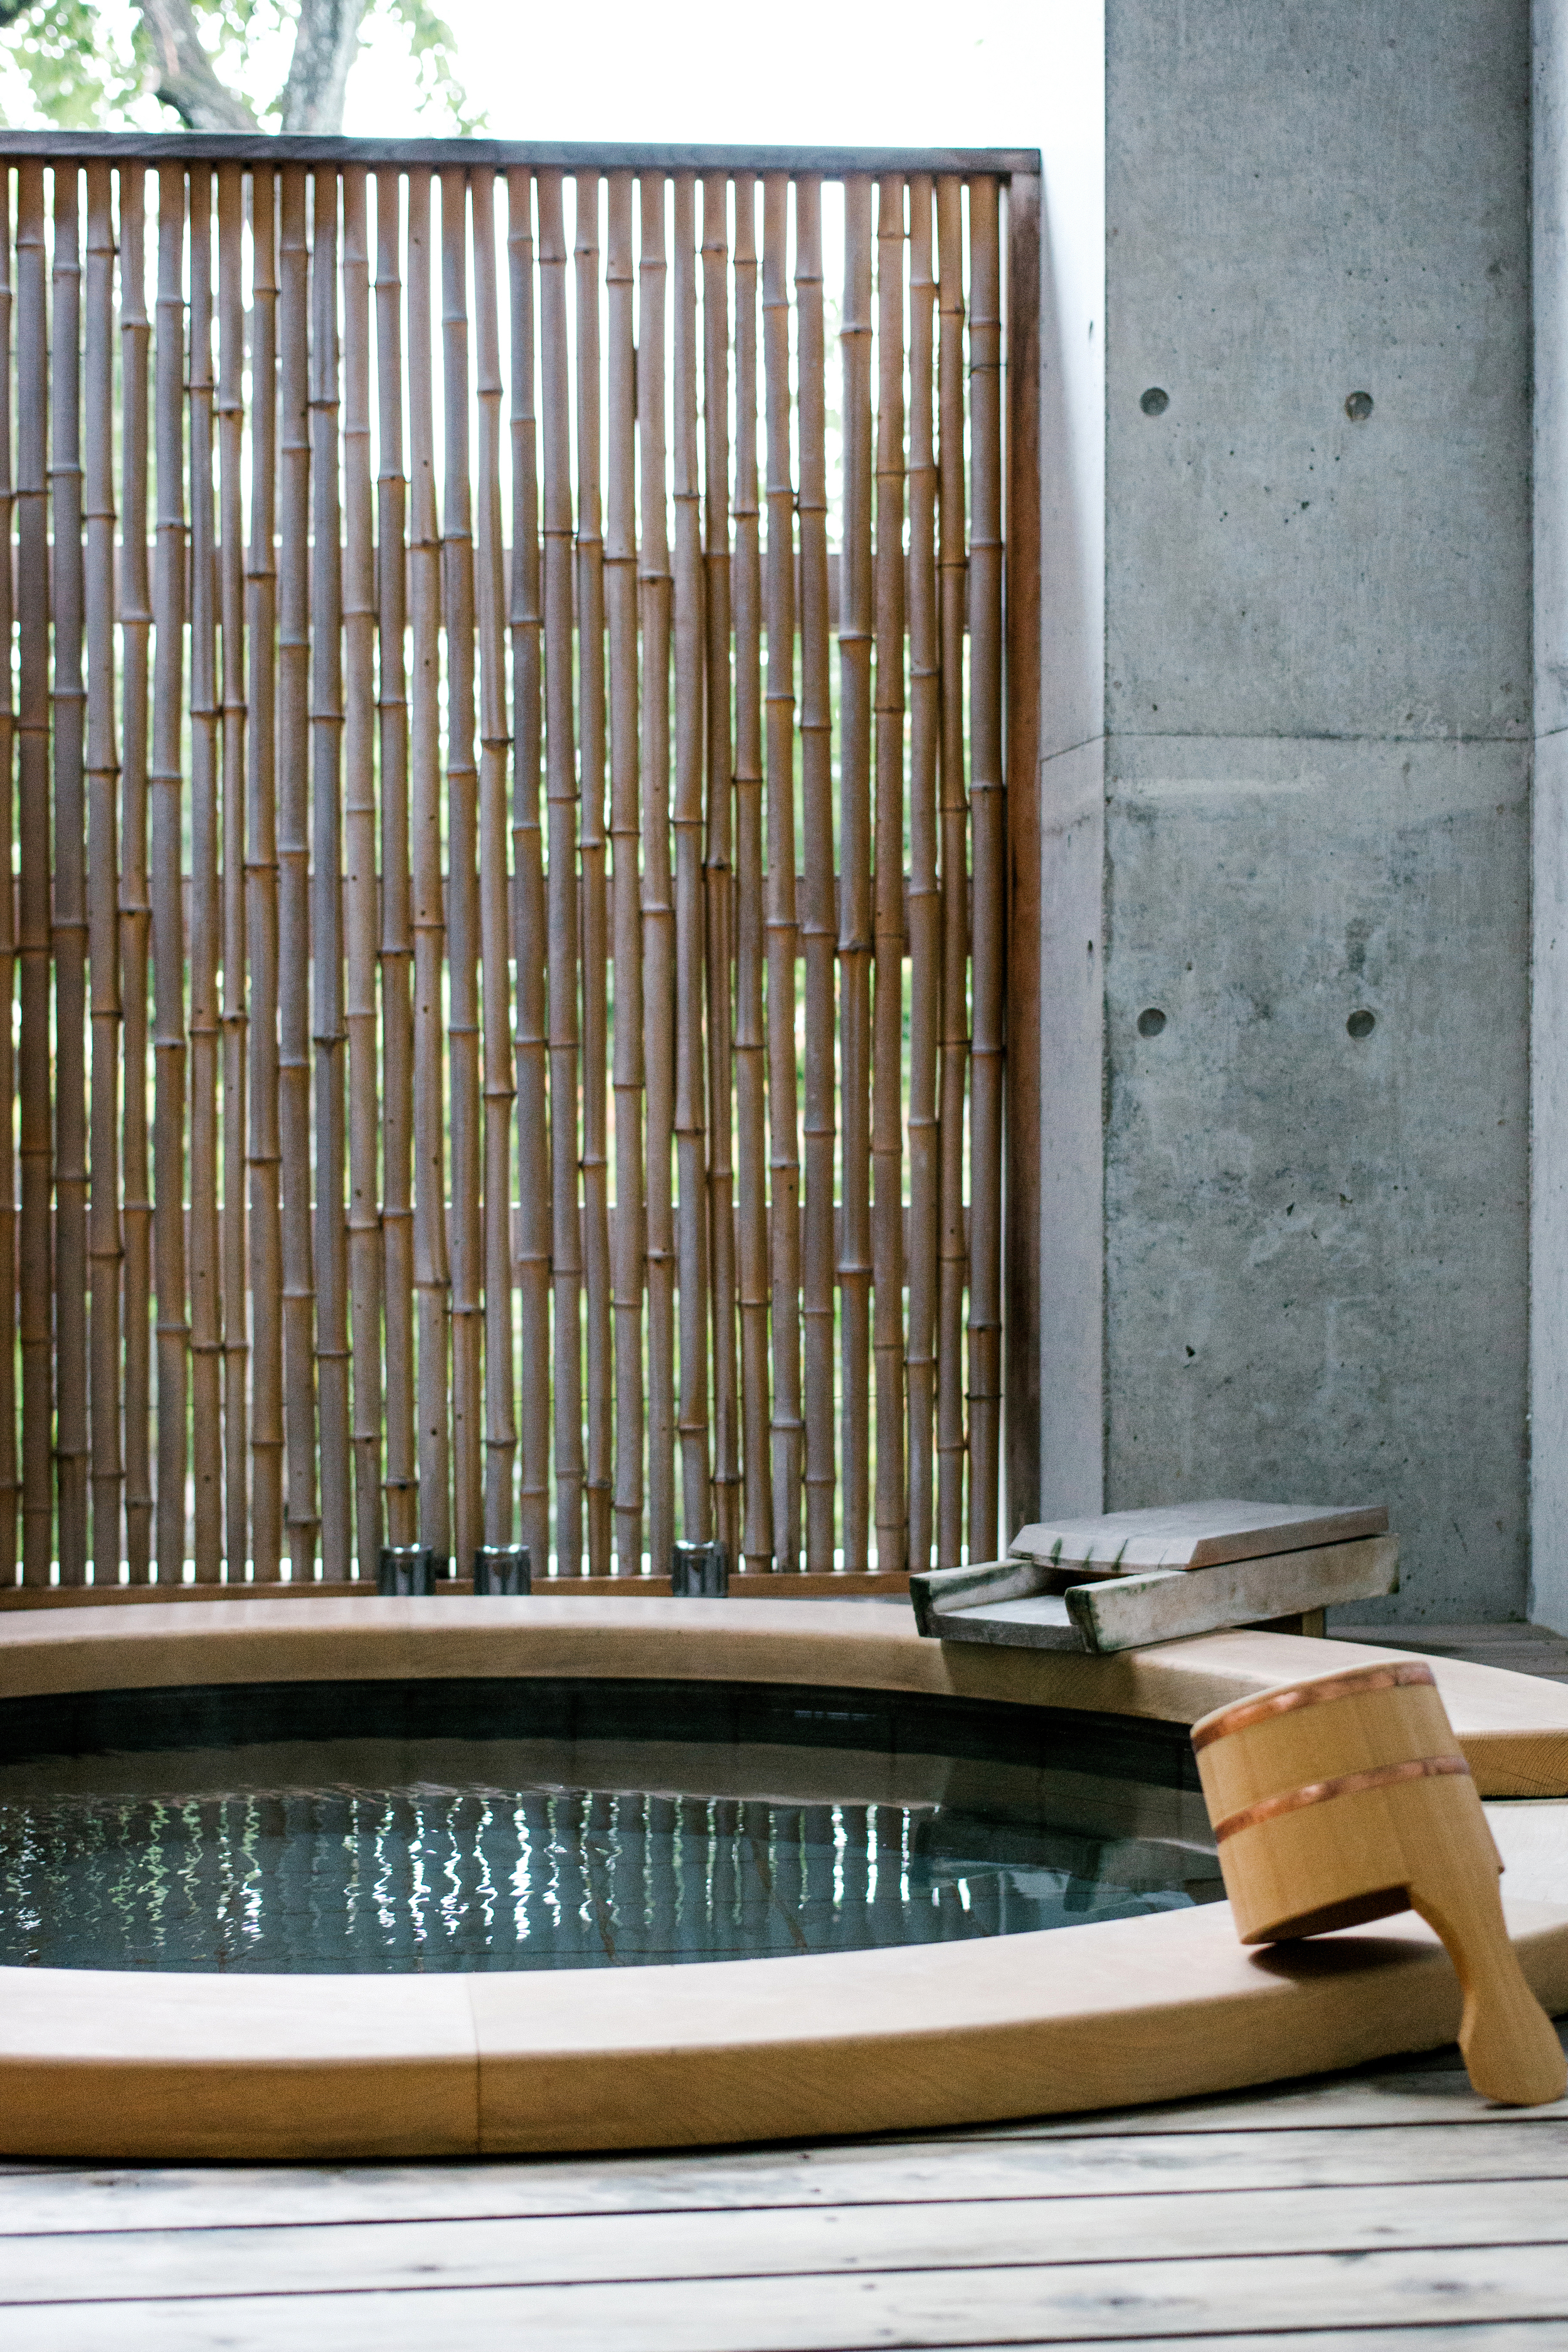 Morning dip in our private open-air onsen (hot spring bath)